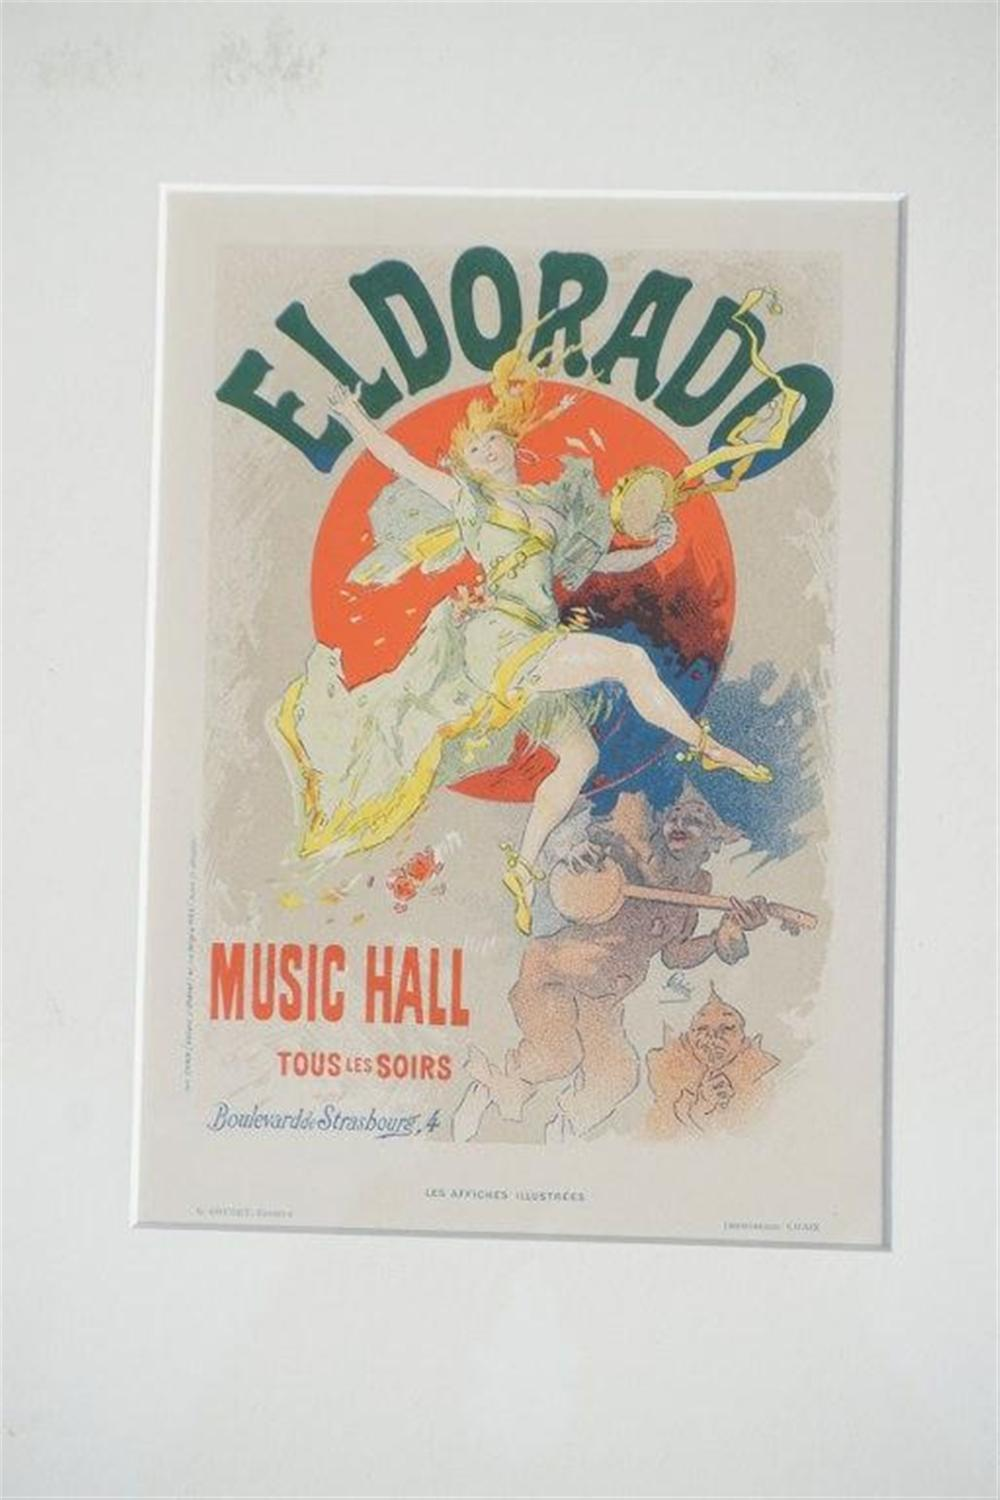 "1896 CHERET PARIS ELDORADO MUSIC HALL STONE LITHO POSTER, EXCELLENT CONDITION, MEASURES 8 3/4"" X 12 1/4"", FROM RETIRED DEALERS COLLECTION, SHRINK WRAPPED AND MATTED."